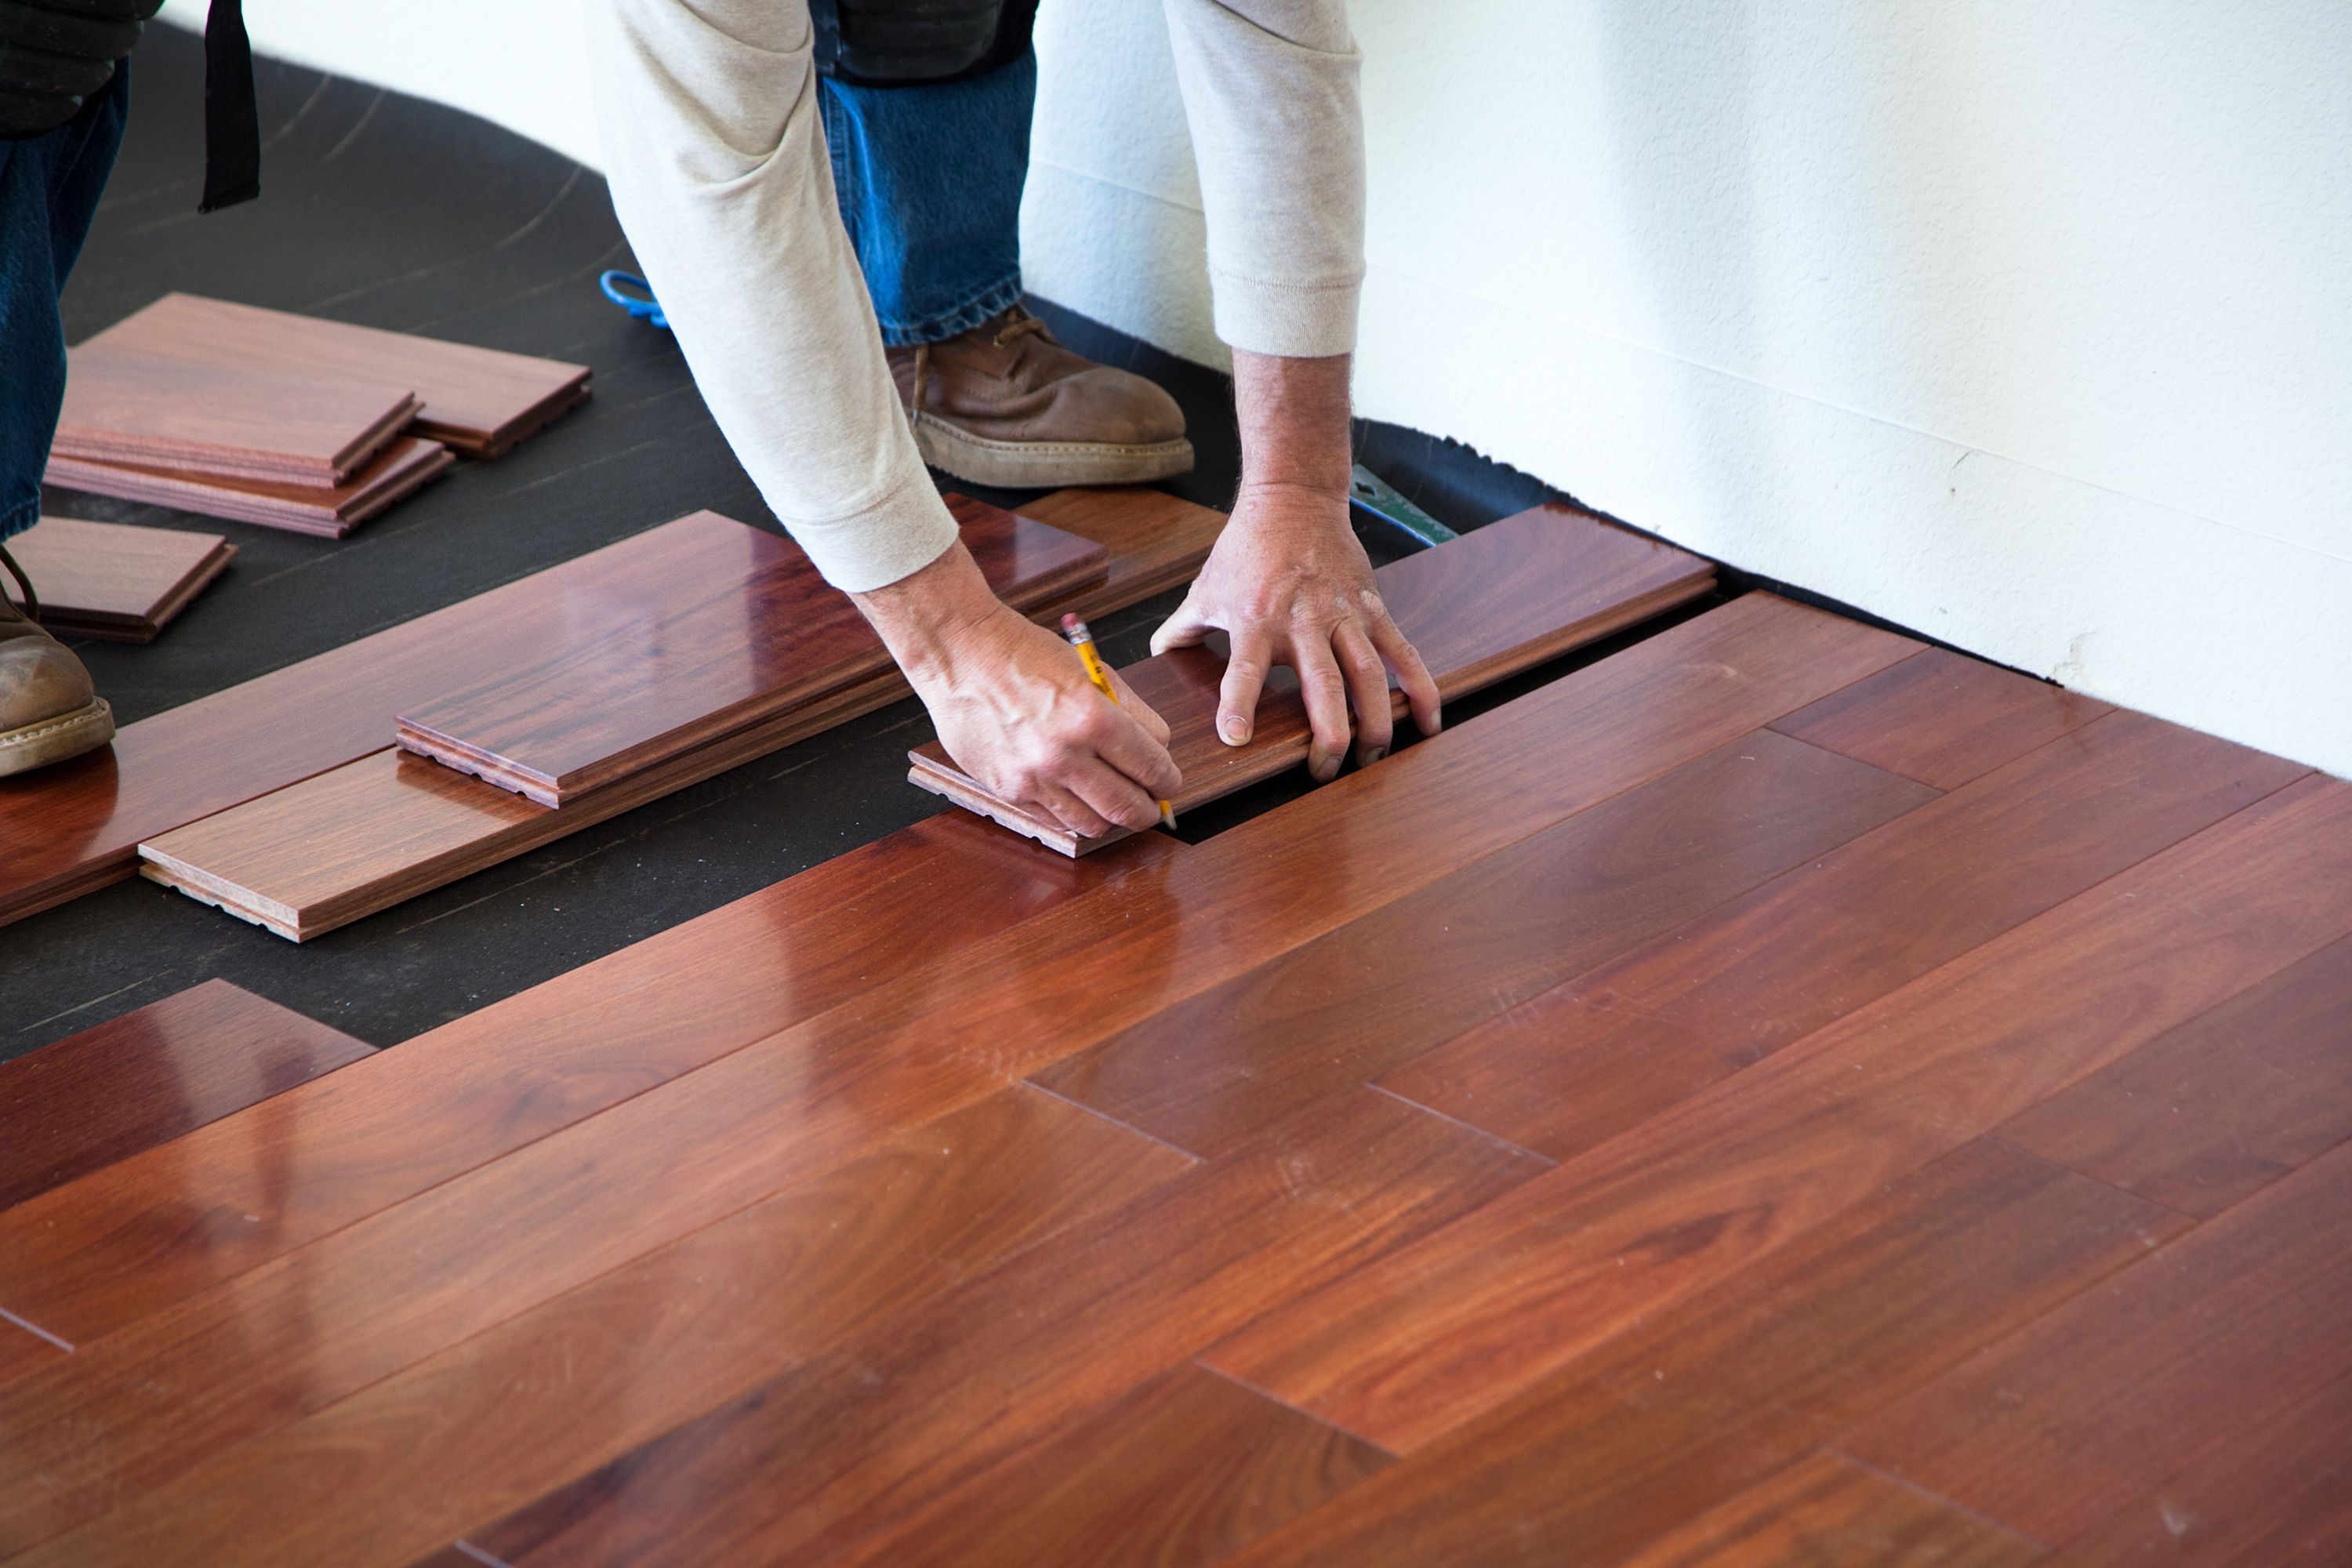 How to Install Nail Down Hardwood Floor On Concrete Of the Subfloor is the Foundation Of A Good Floor Throughout Installing Hardwood Floor 170040982 582b748c5f9b58d5b17d0c58